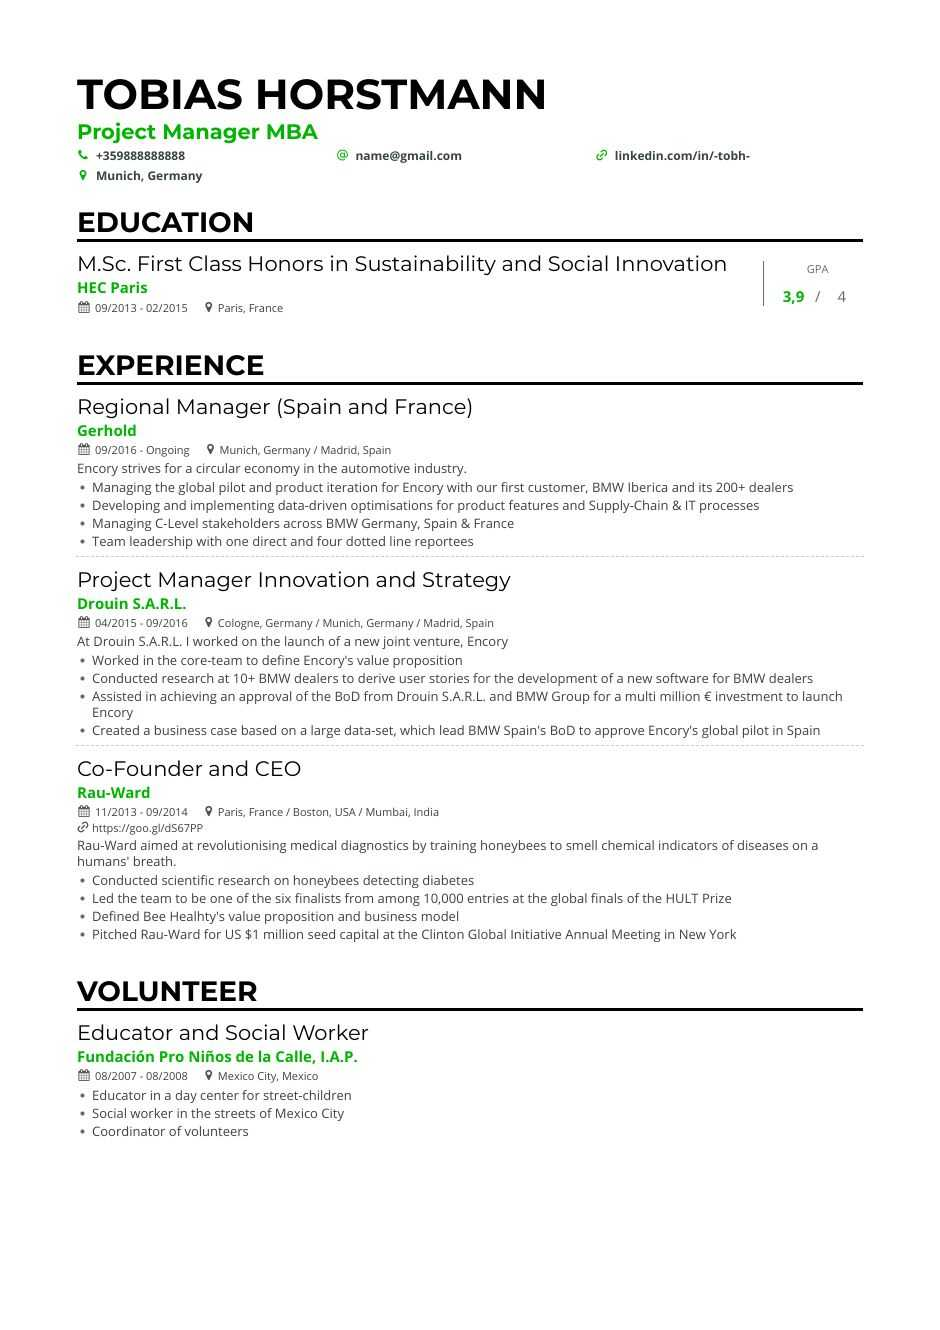 project manager resume examples guide expert tips for generated resumes college student Resume Project Manager Resume Examples